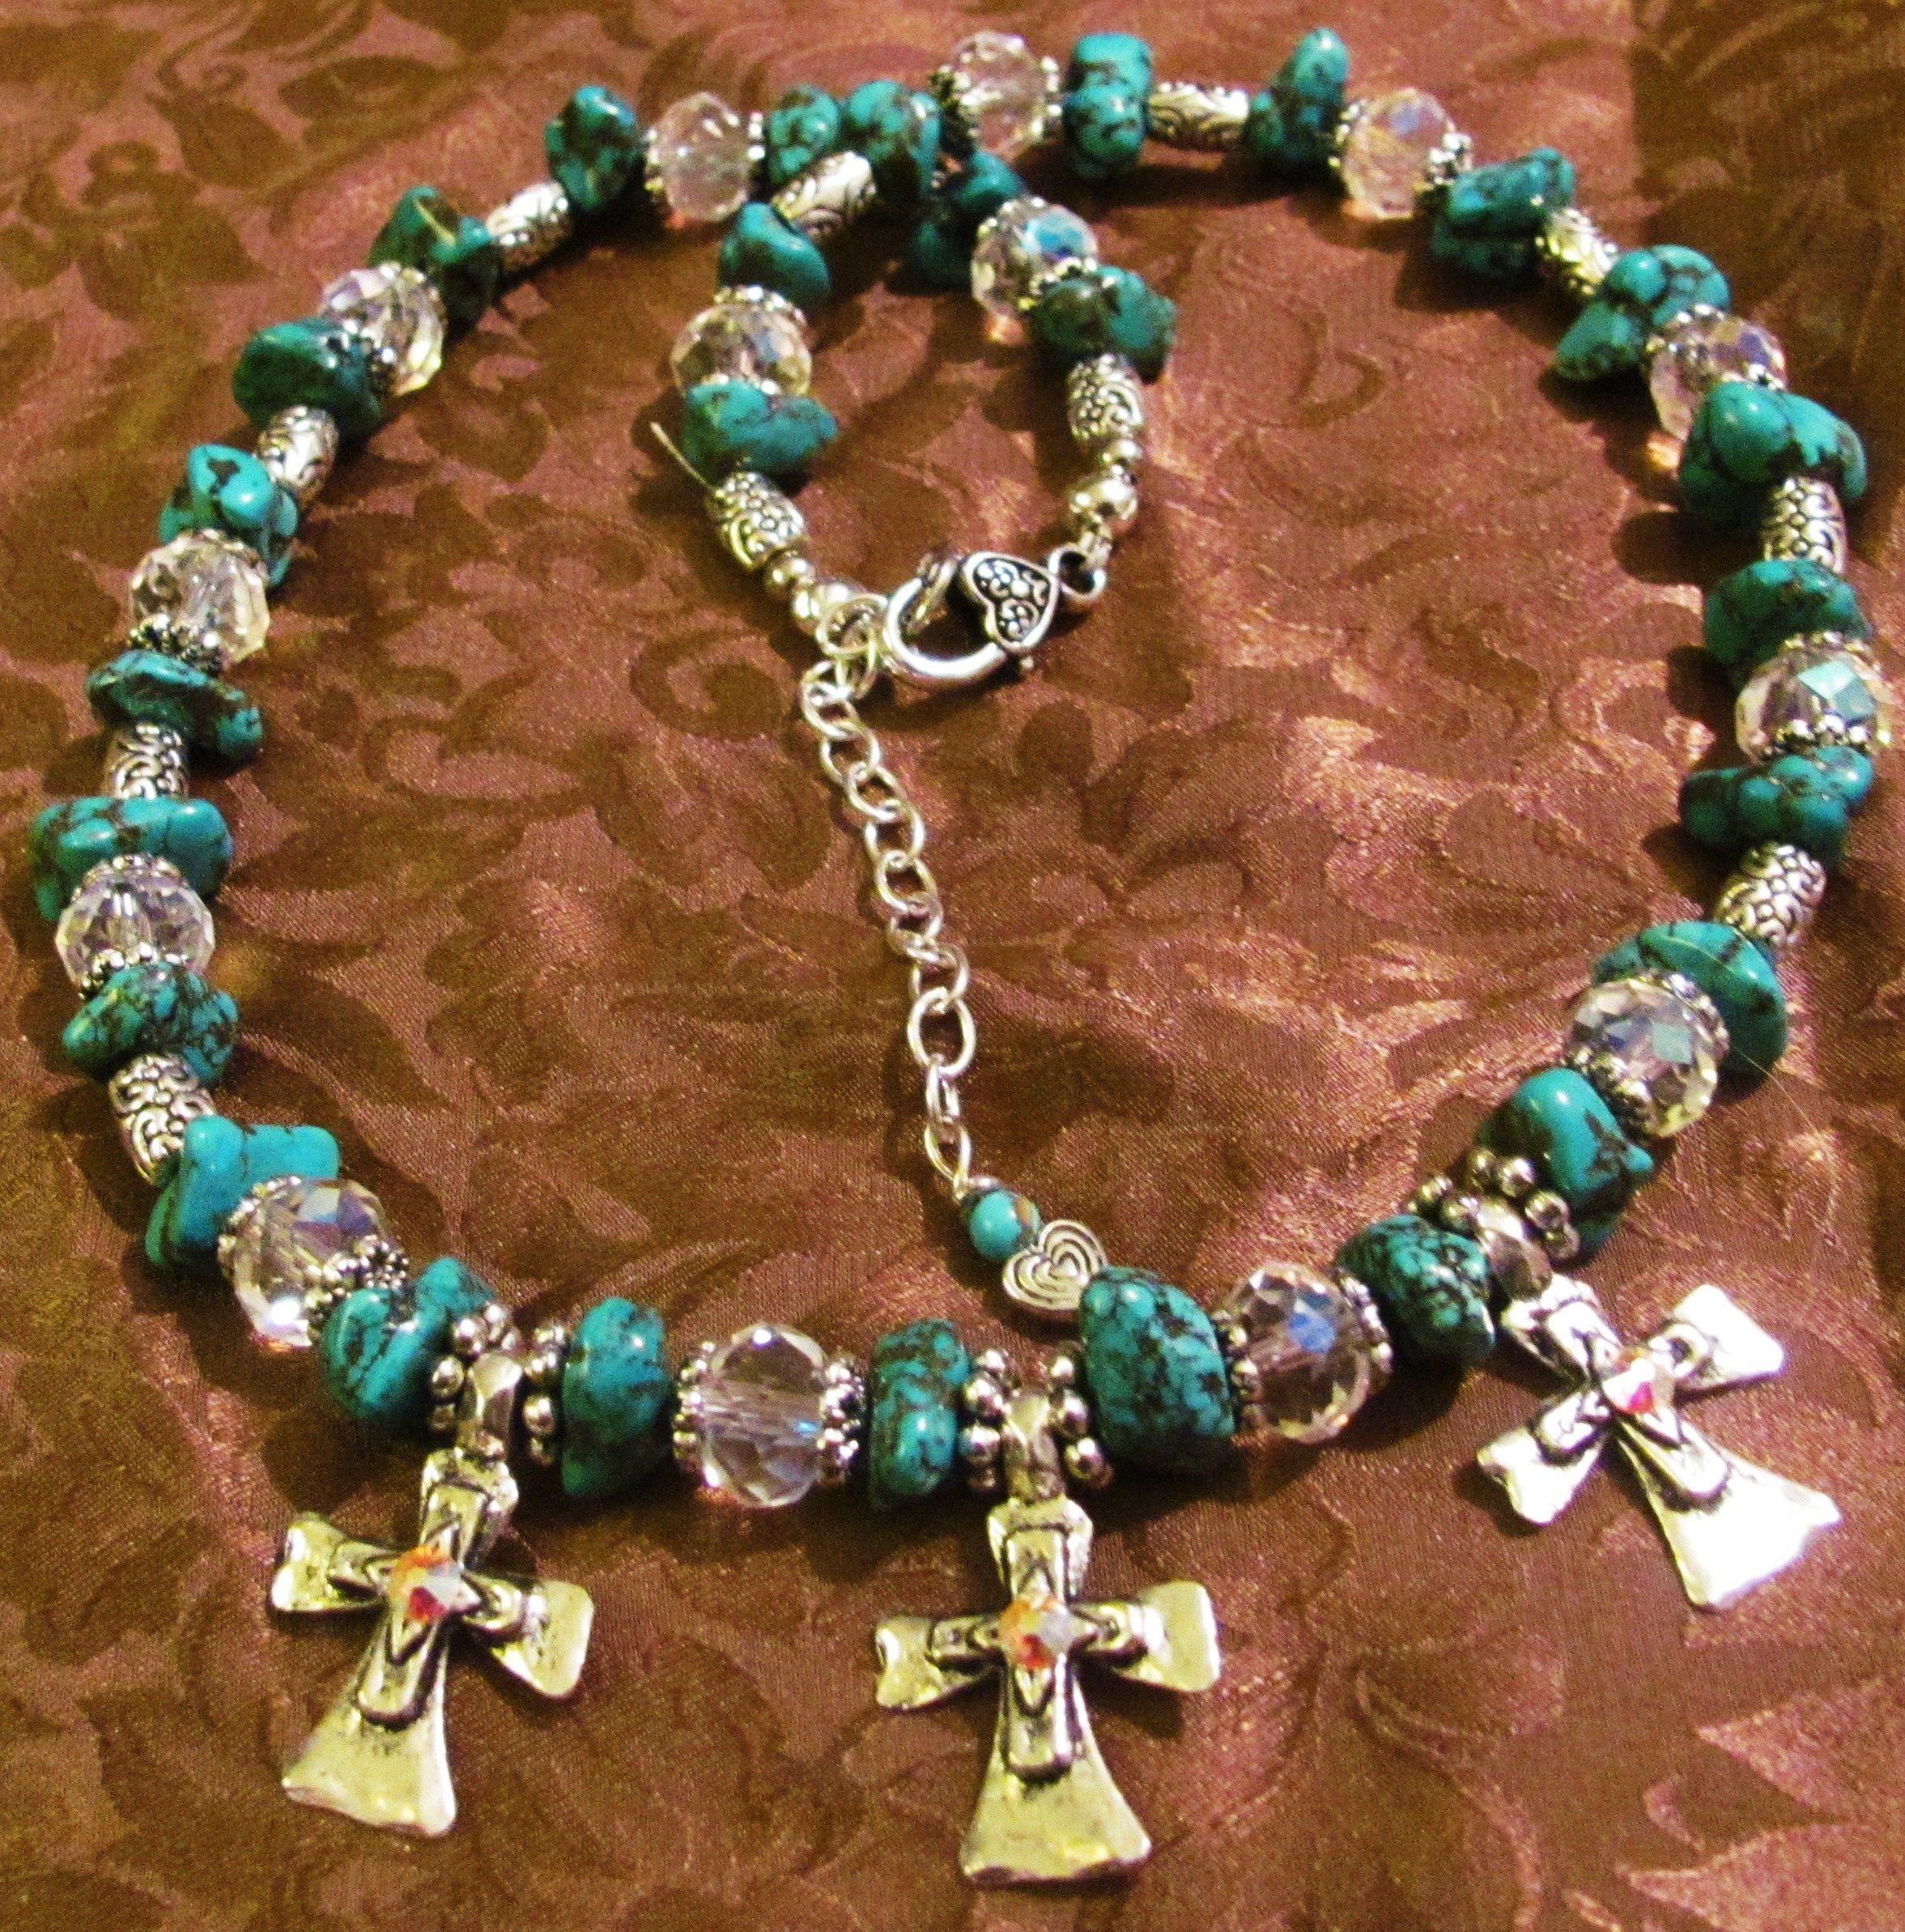 Trinity, hand made turquoise gemstone necklace set by sM Art and Design.2013